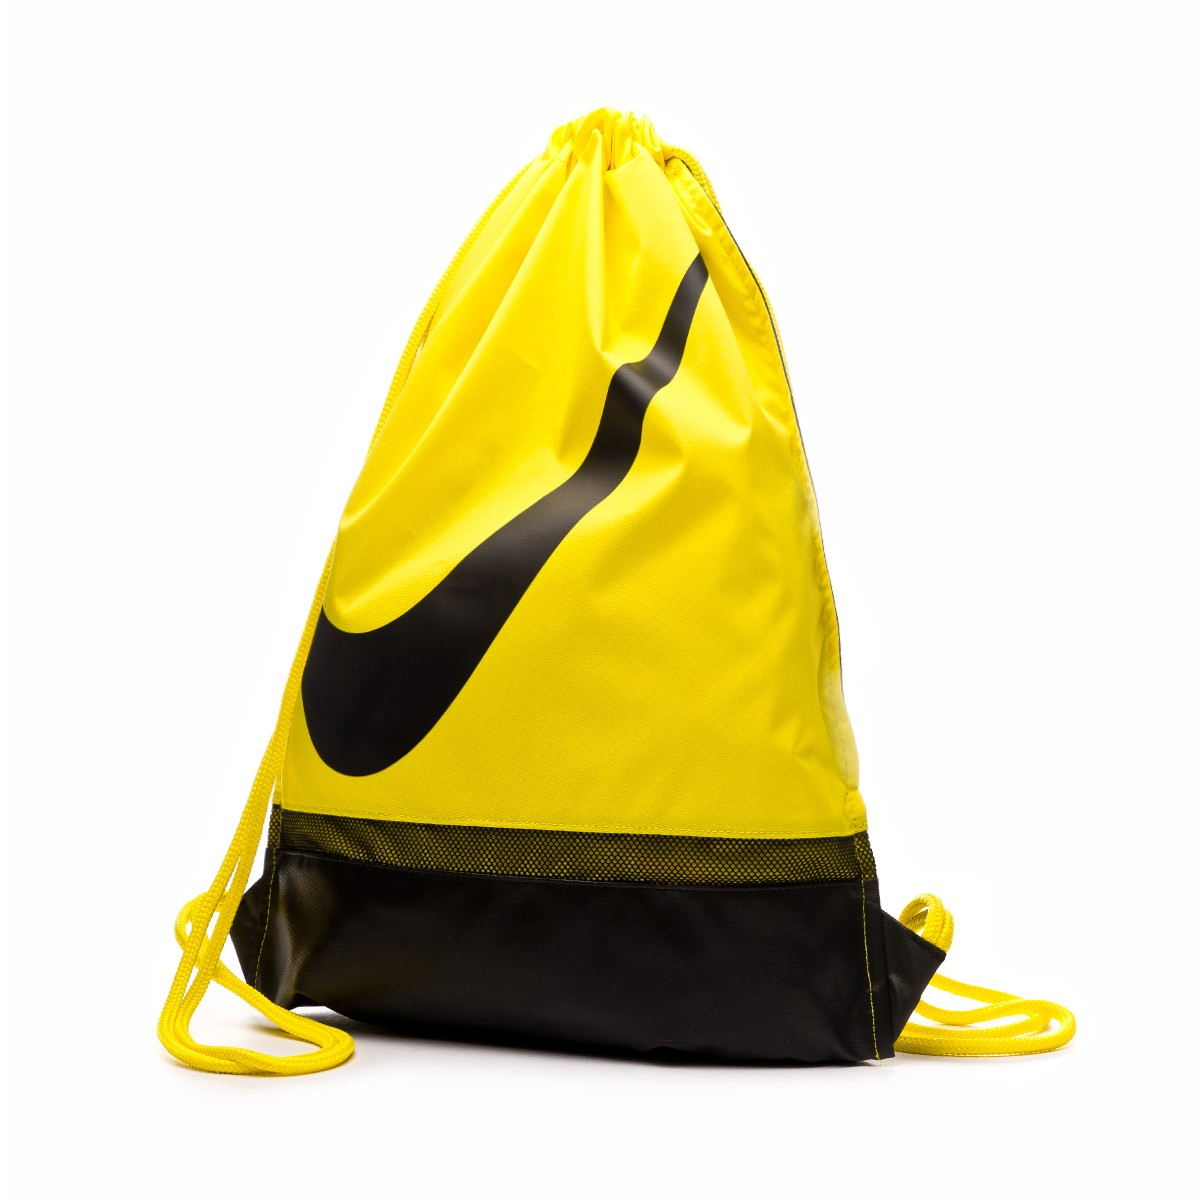 196250ae Backpack Nike Gymsack Football Optical yellow-Black - Tienda de ...